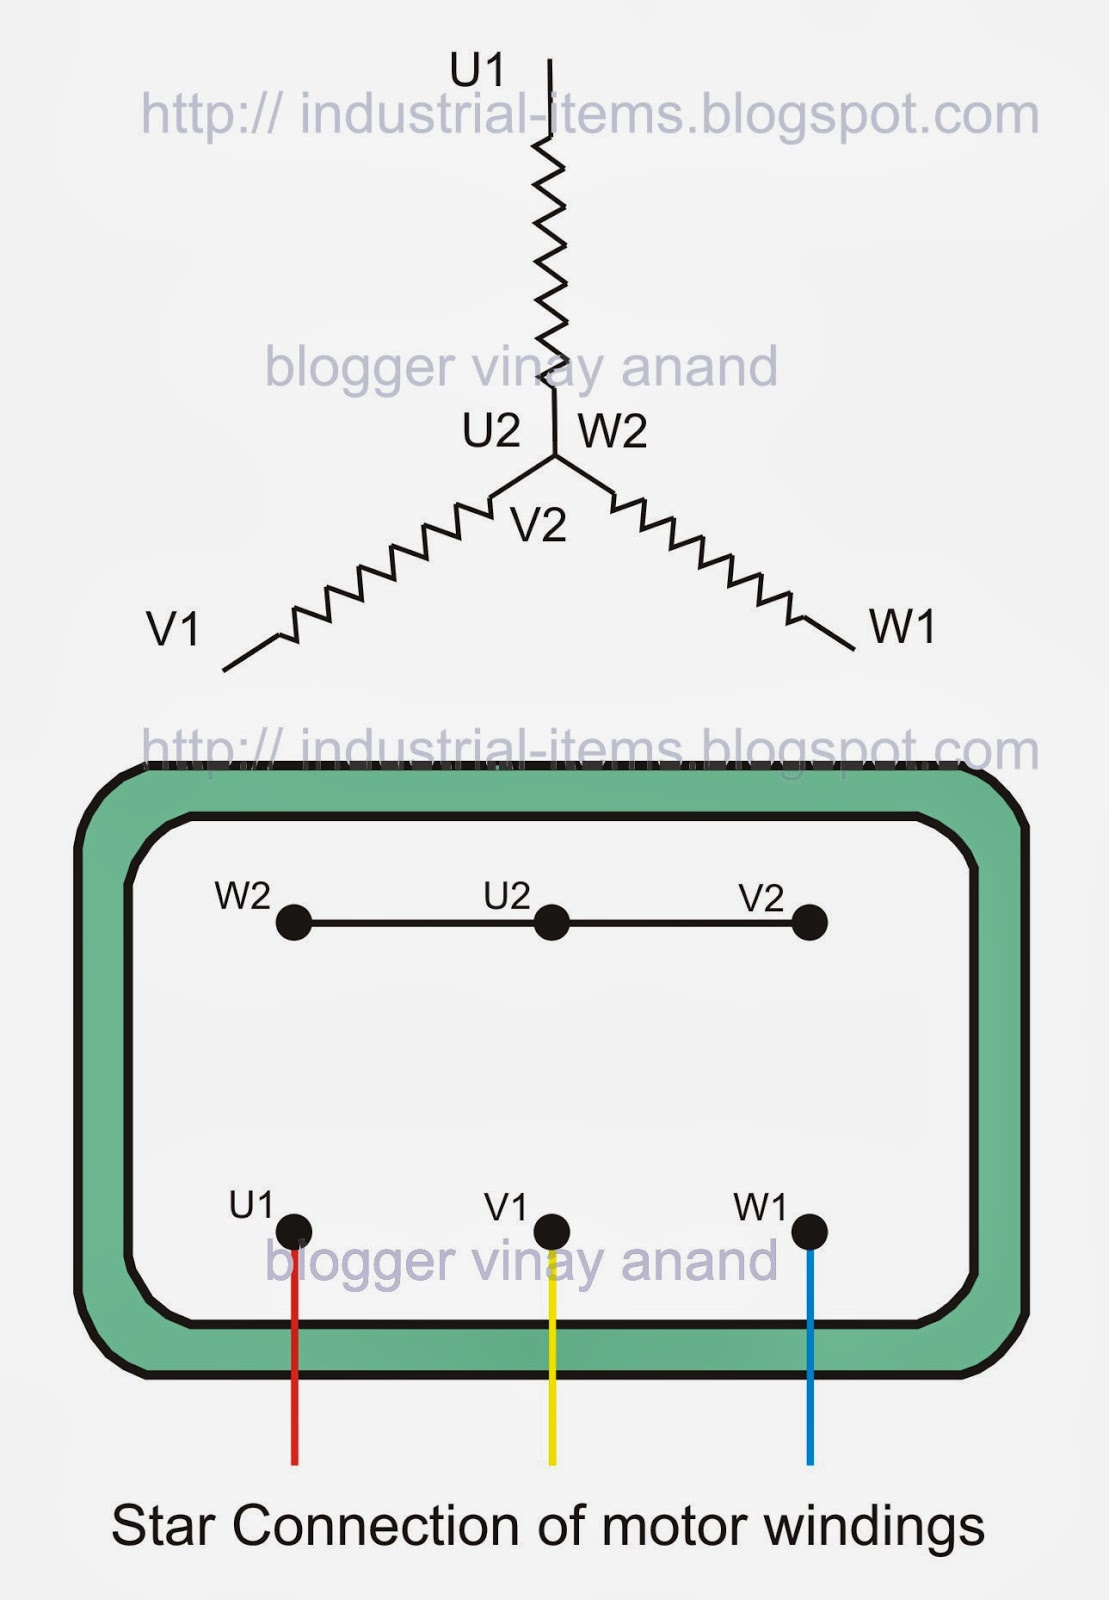 4 bp blogspot com lqorrgpfmee ulbdglb_79i aaaaaaa Motor Connection Diagram